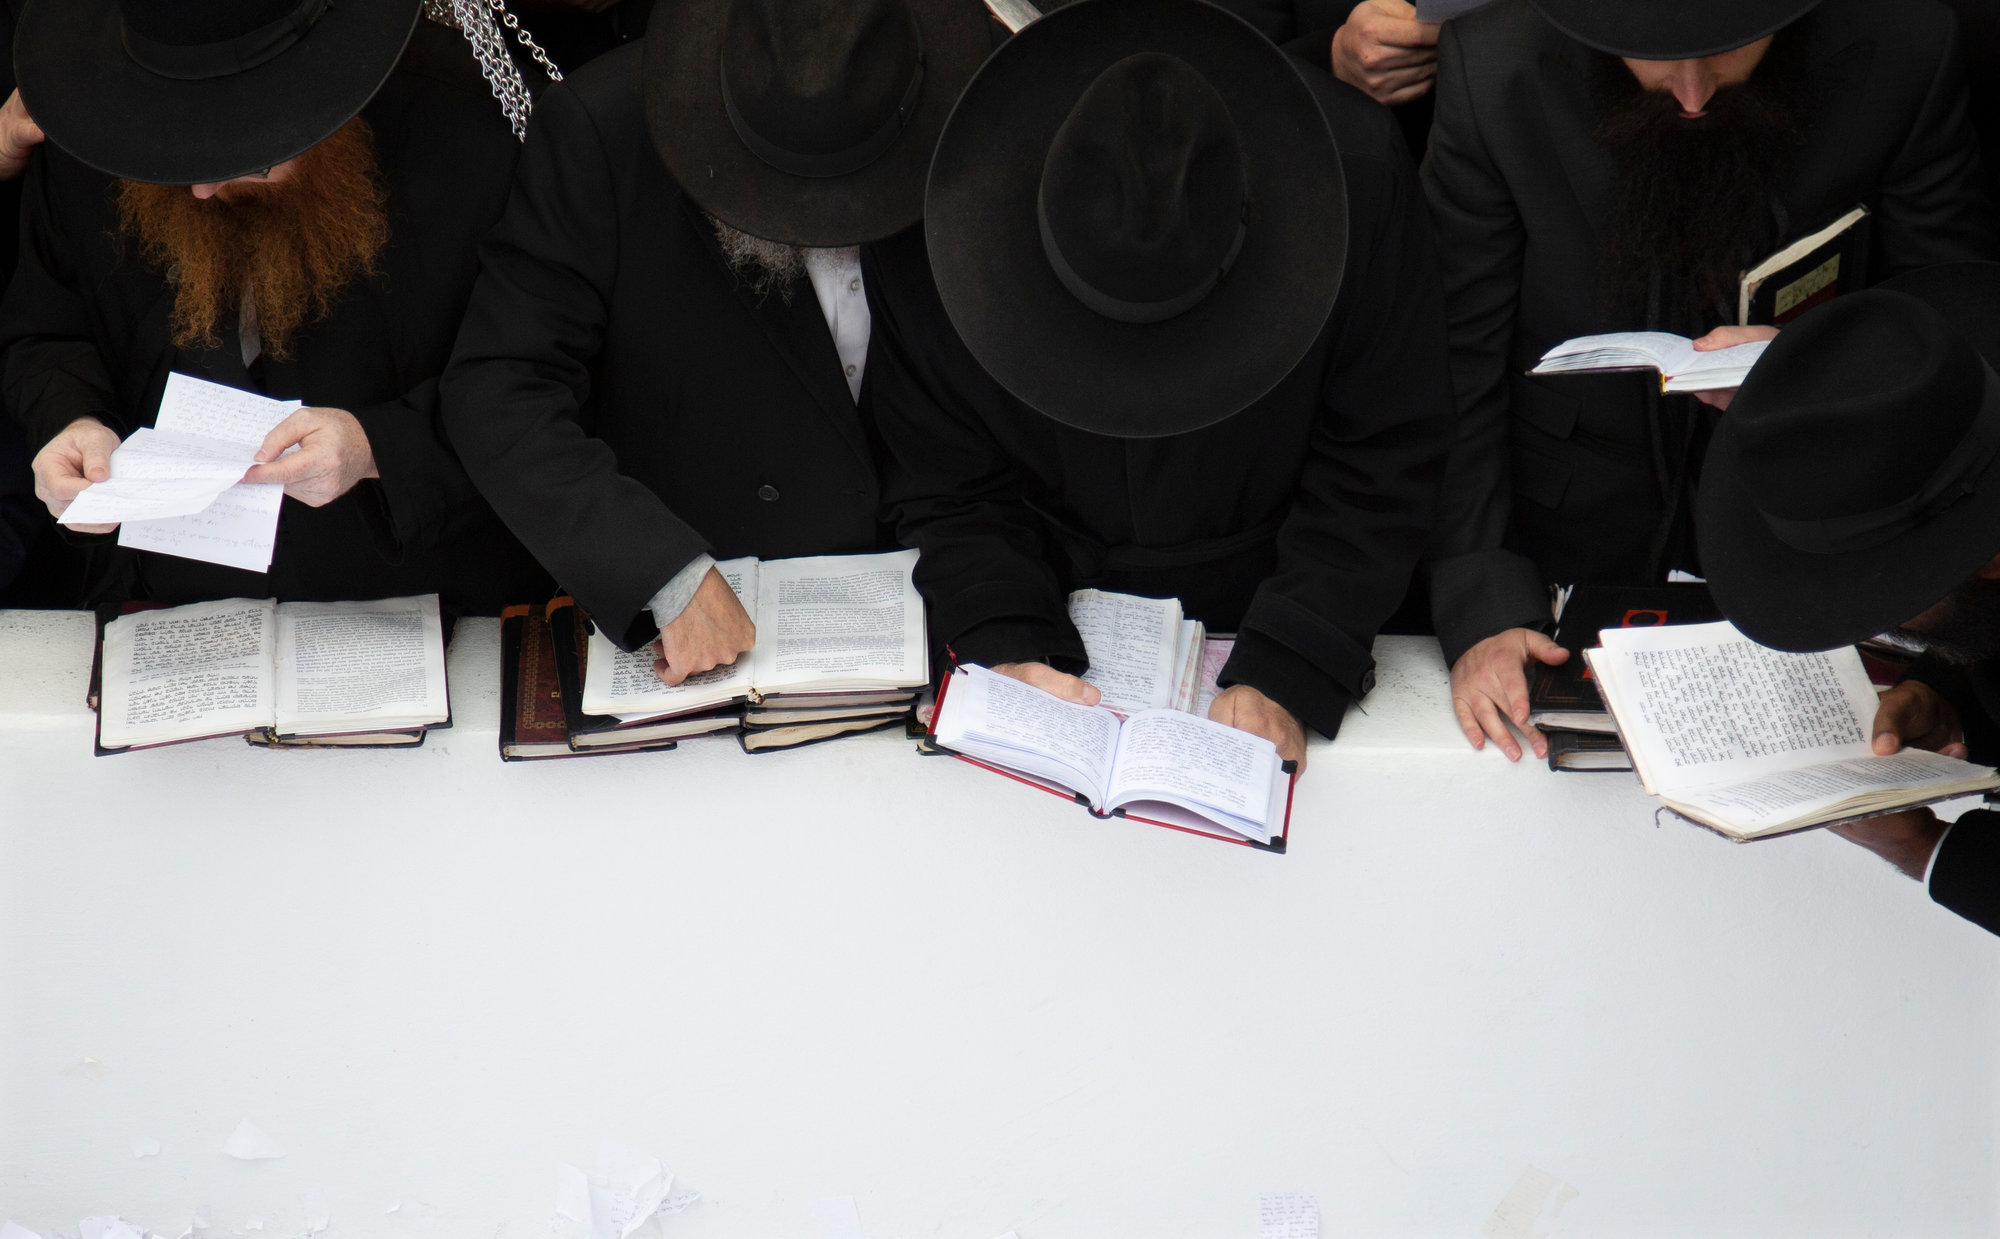 The Associated Press Hasidic leaders read personal notes and prayers at the resting place of the late Rabbi Menachem Mendel Schneerson, known as the Lubavitcher Rebbe, while attending the annual International Conference of Chabad-Lubavitch Emissaries at Montefiore Cemetery in New York on Nov. 22.